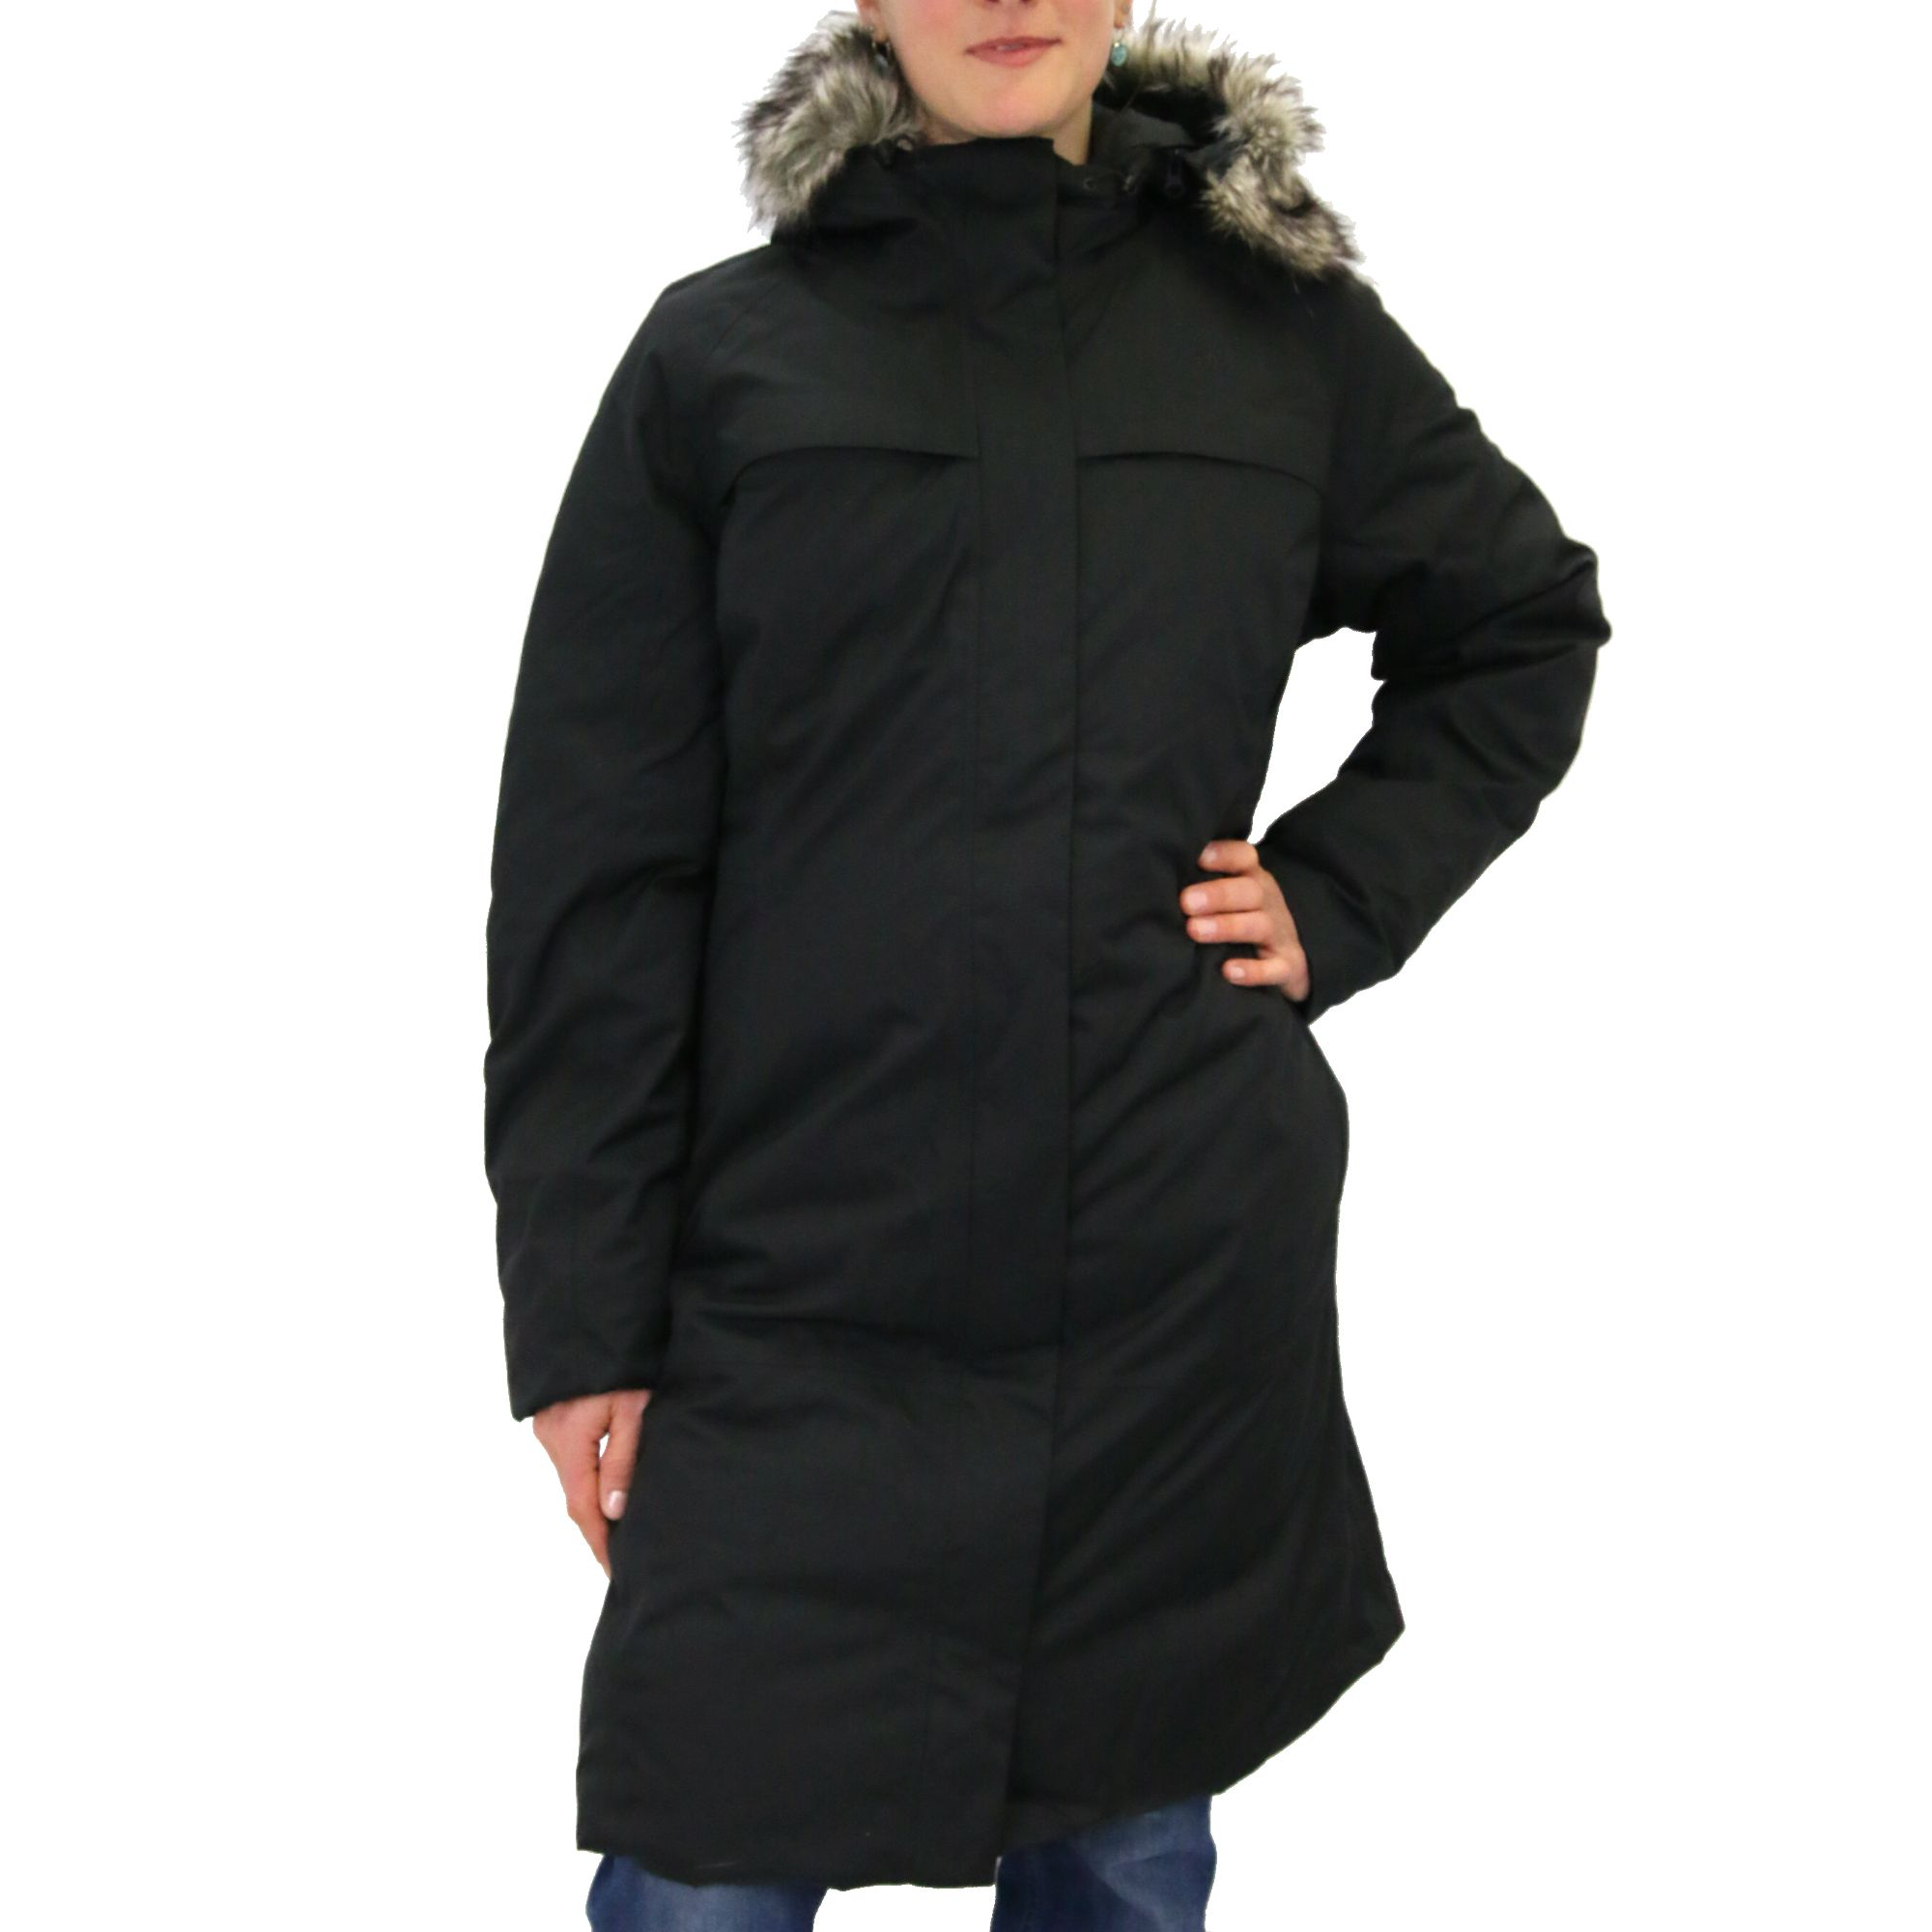 the north face arctic parka ladies coat winter coat winter jacket down coat ebay. Black Bedroom Furniture Sets. Home Design Ideas